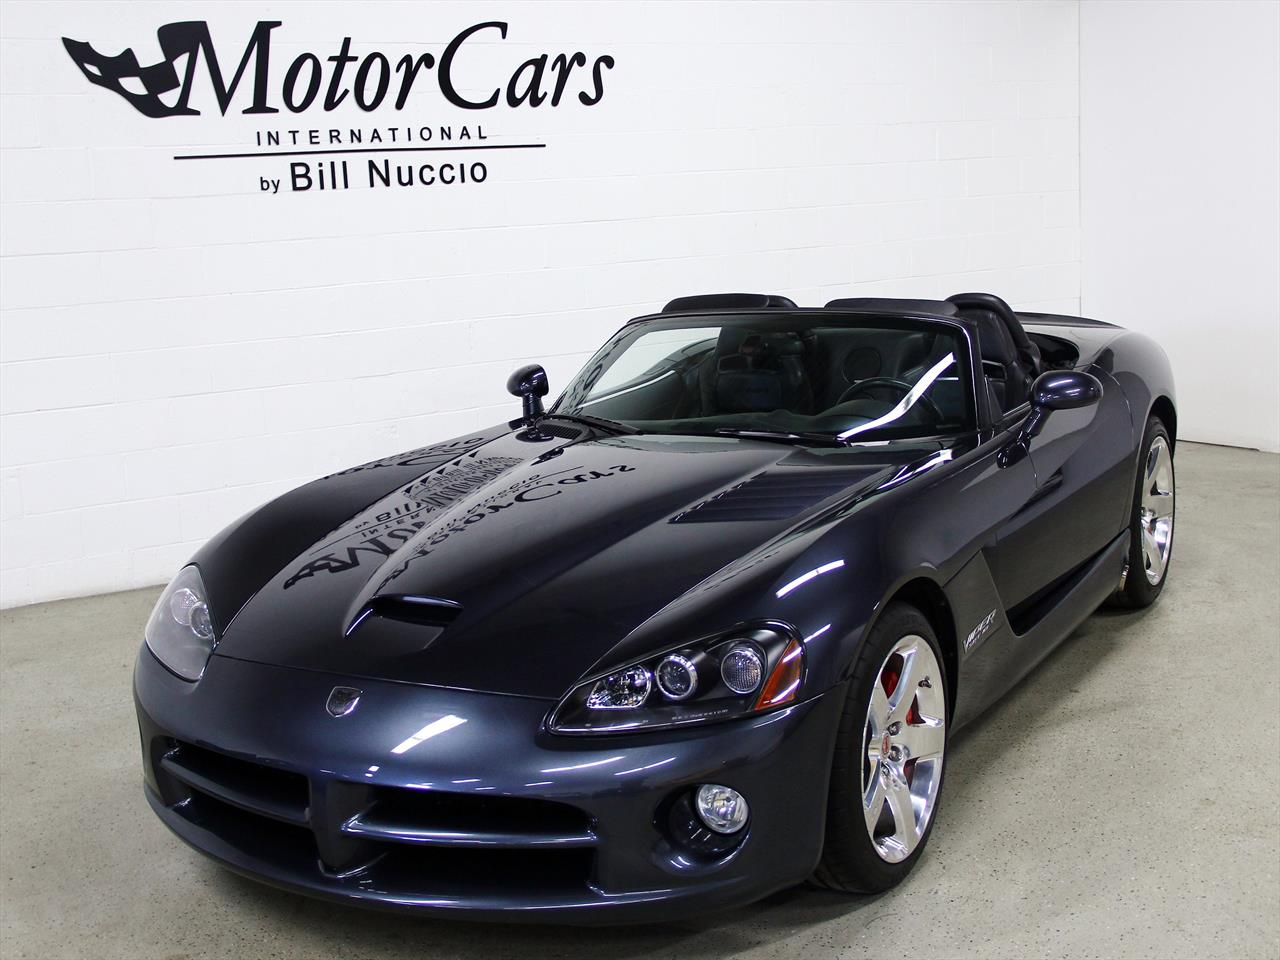 2006 Dodge Viper SRT10 Convertible